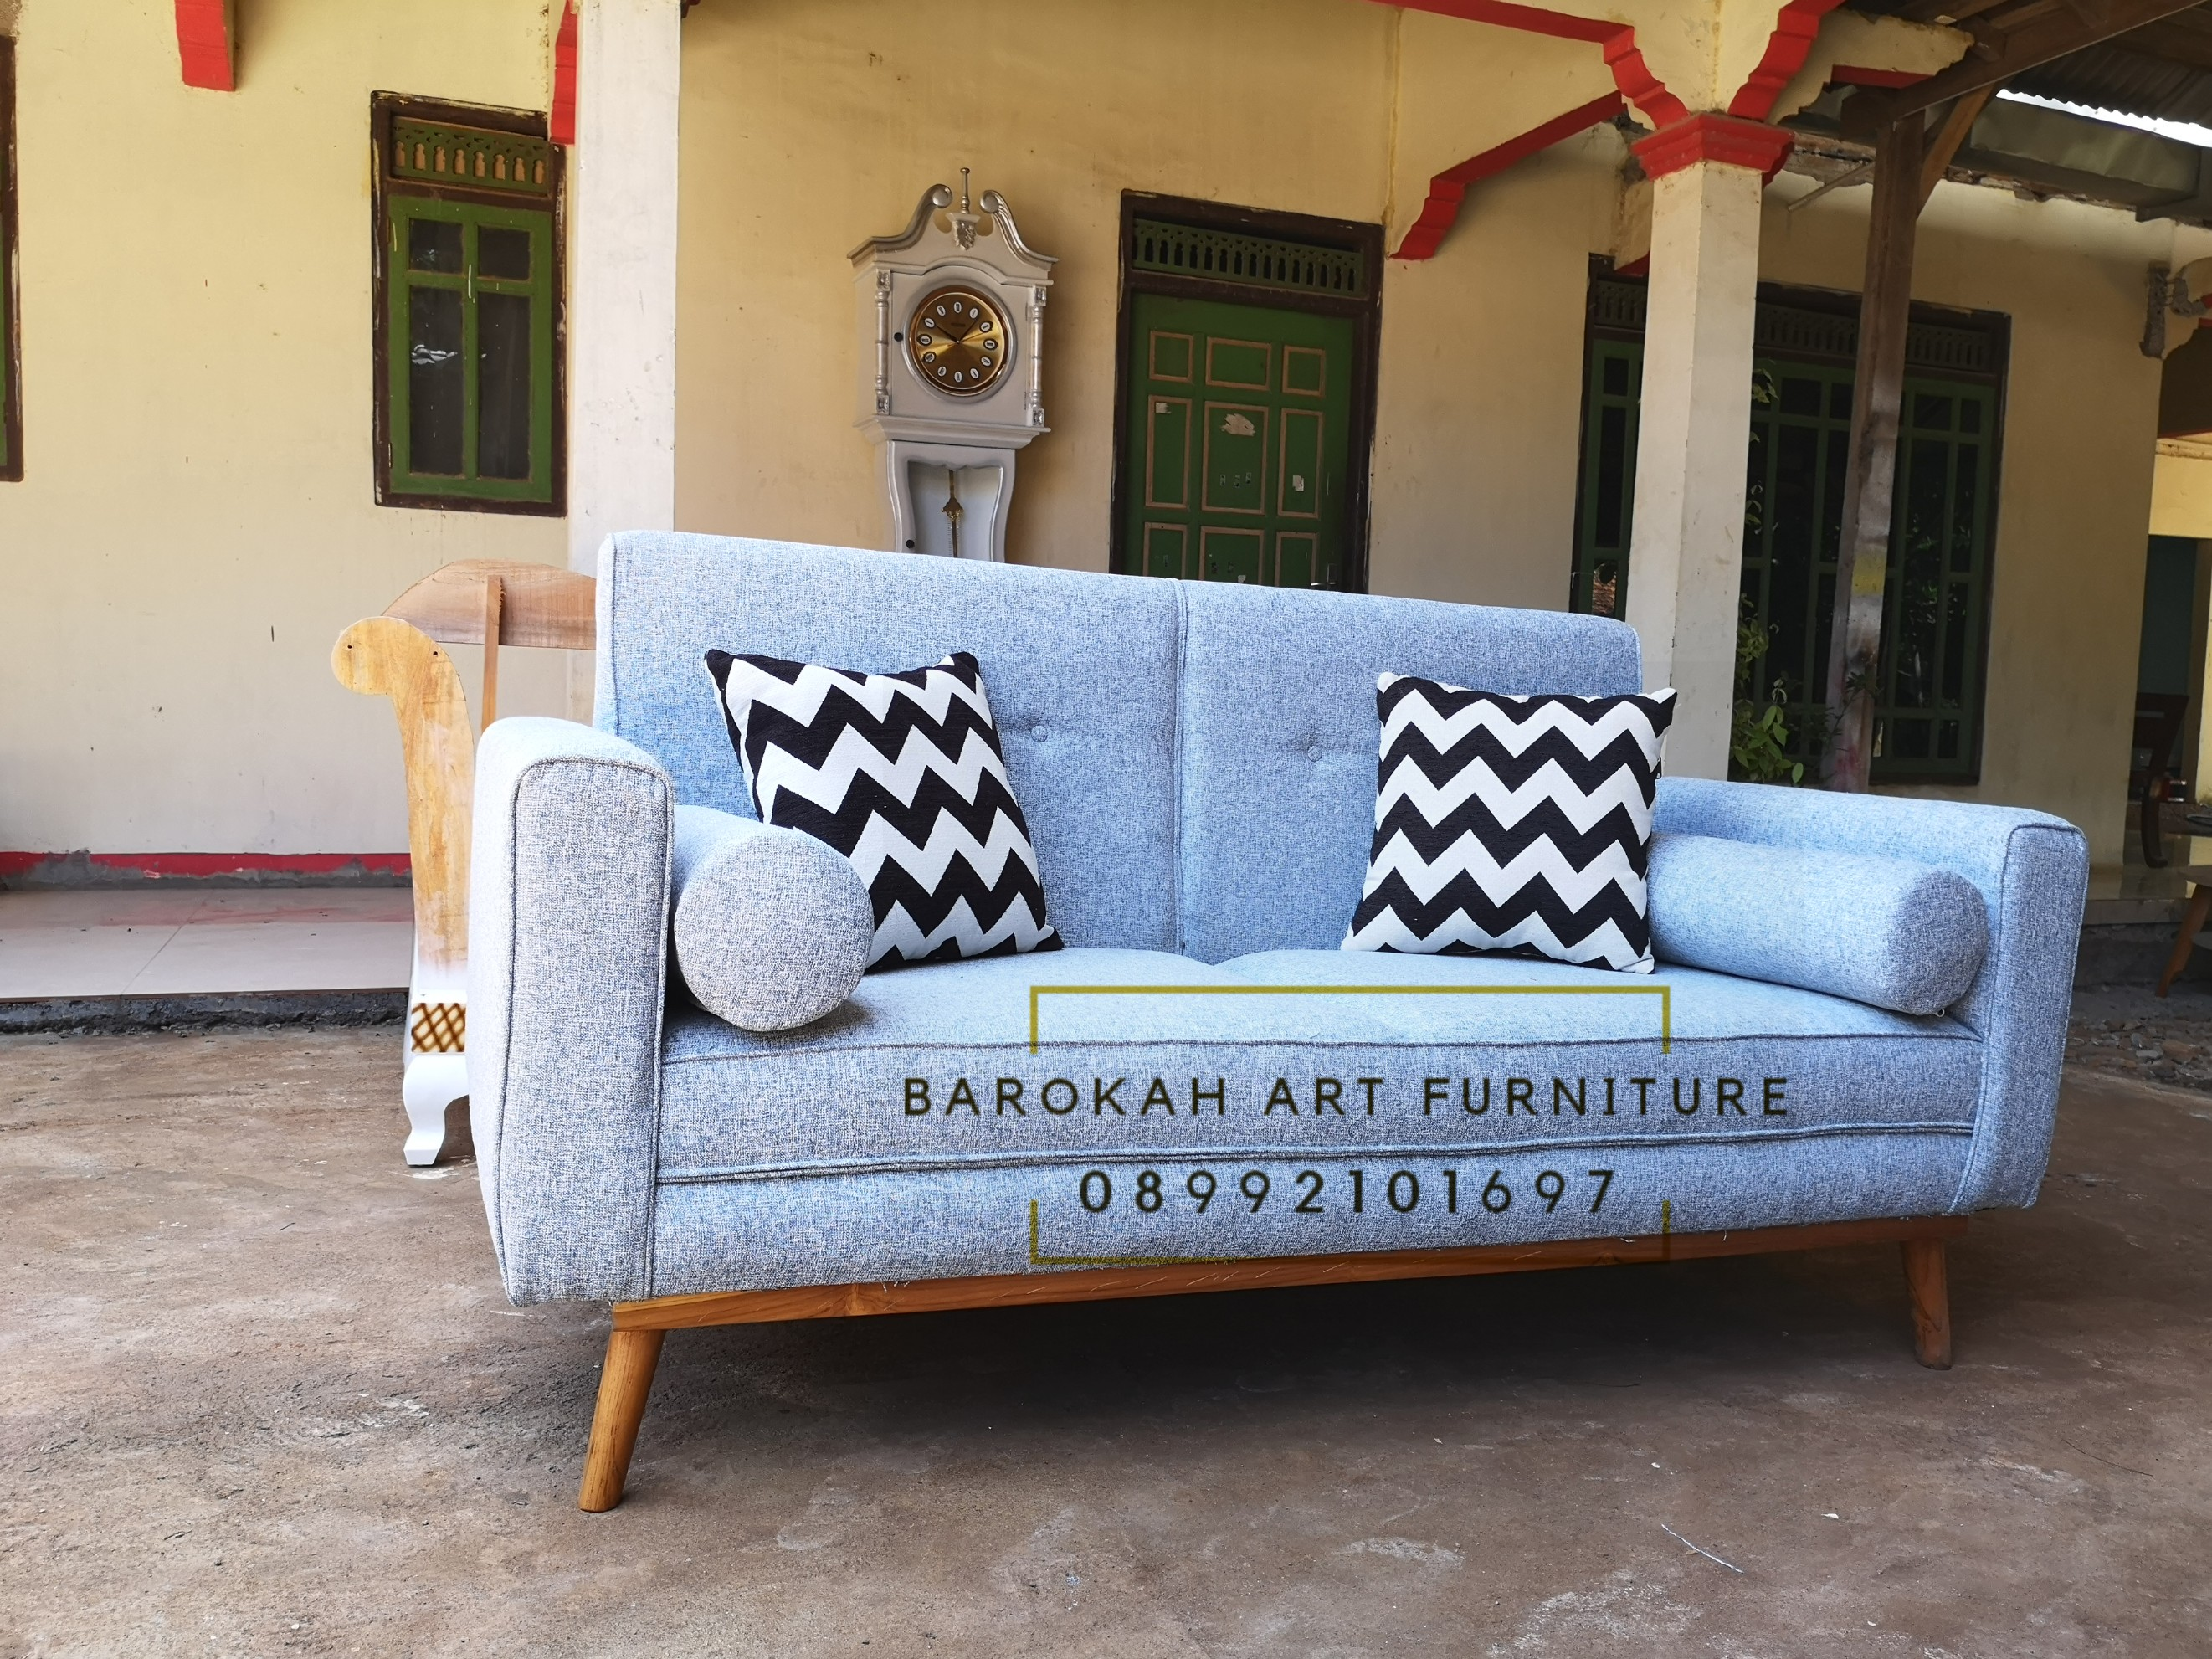 Barokah Art Furniture